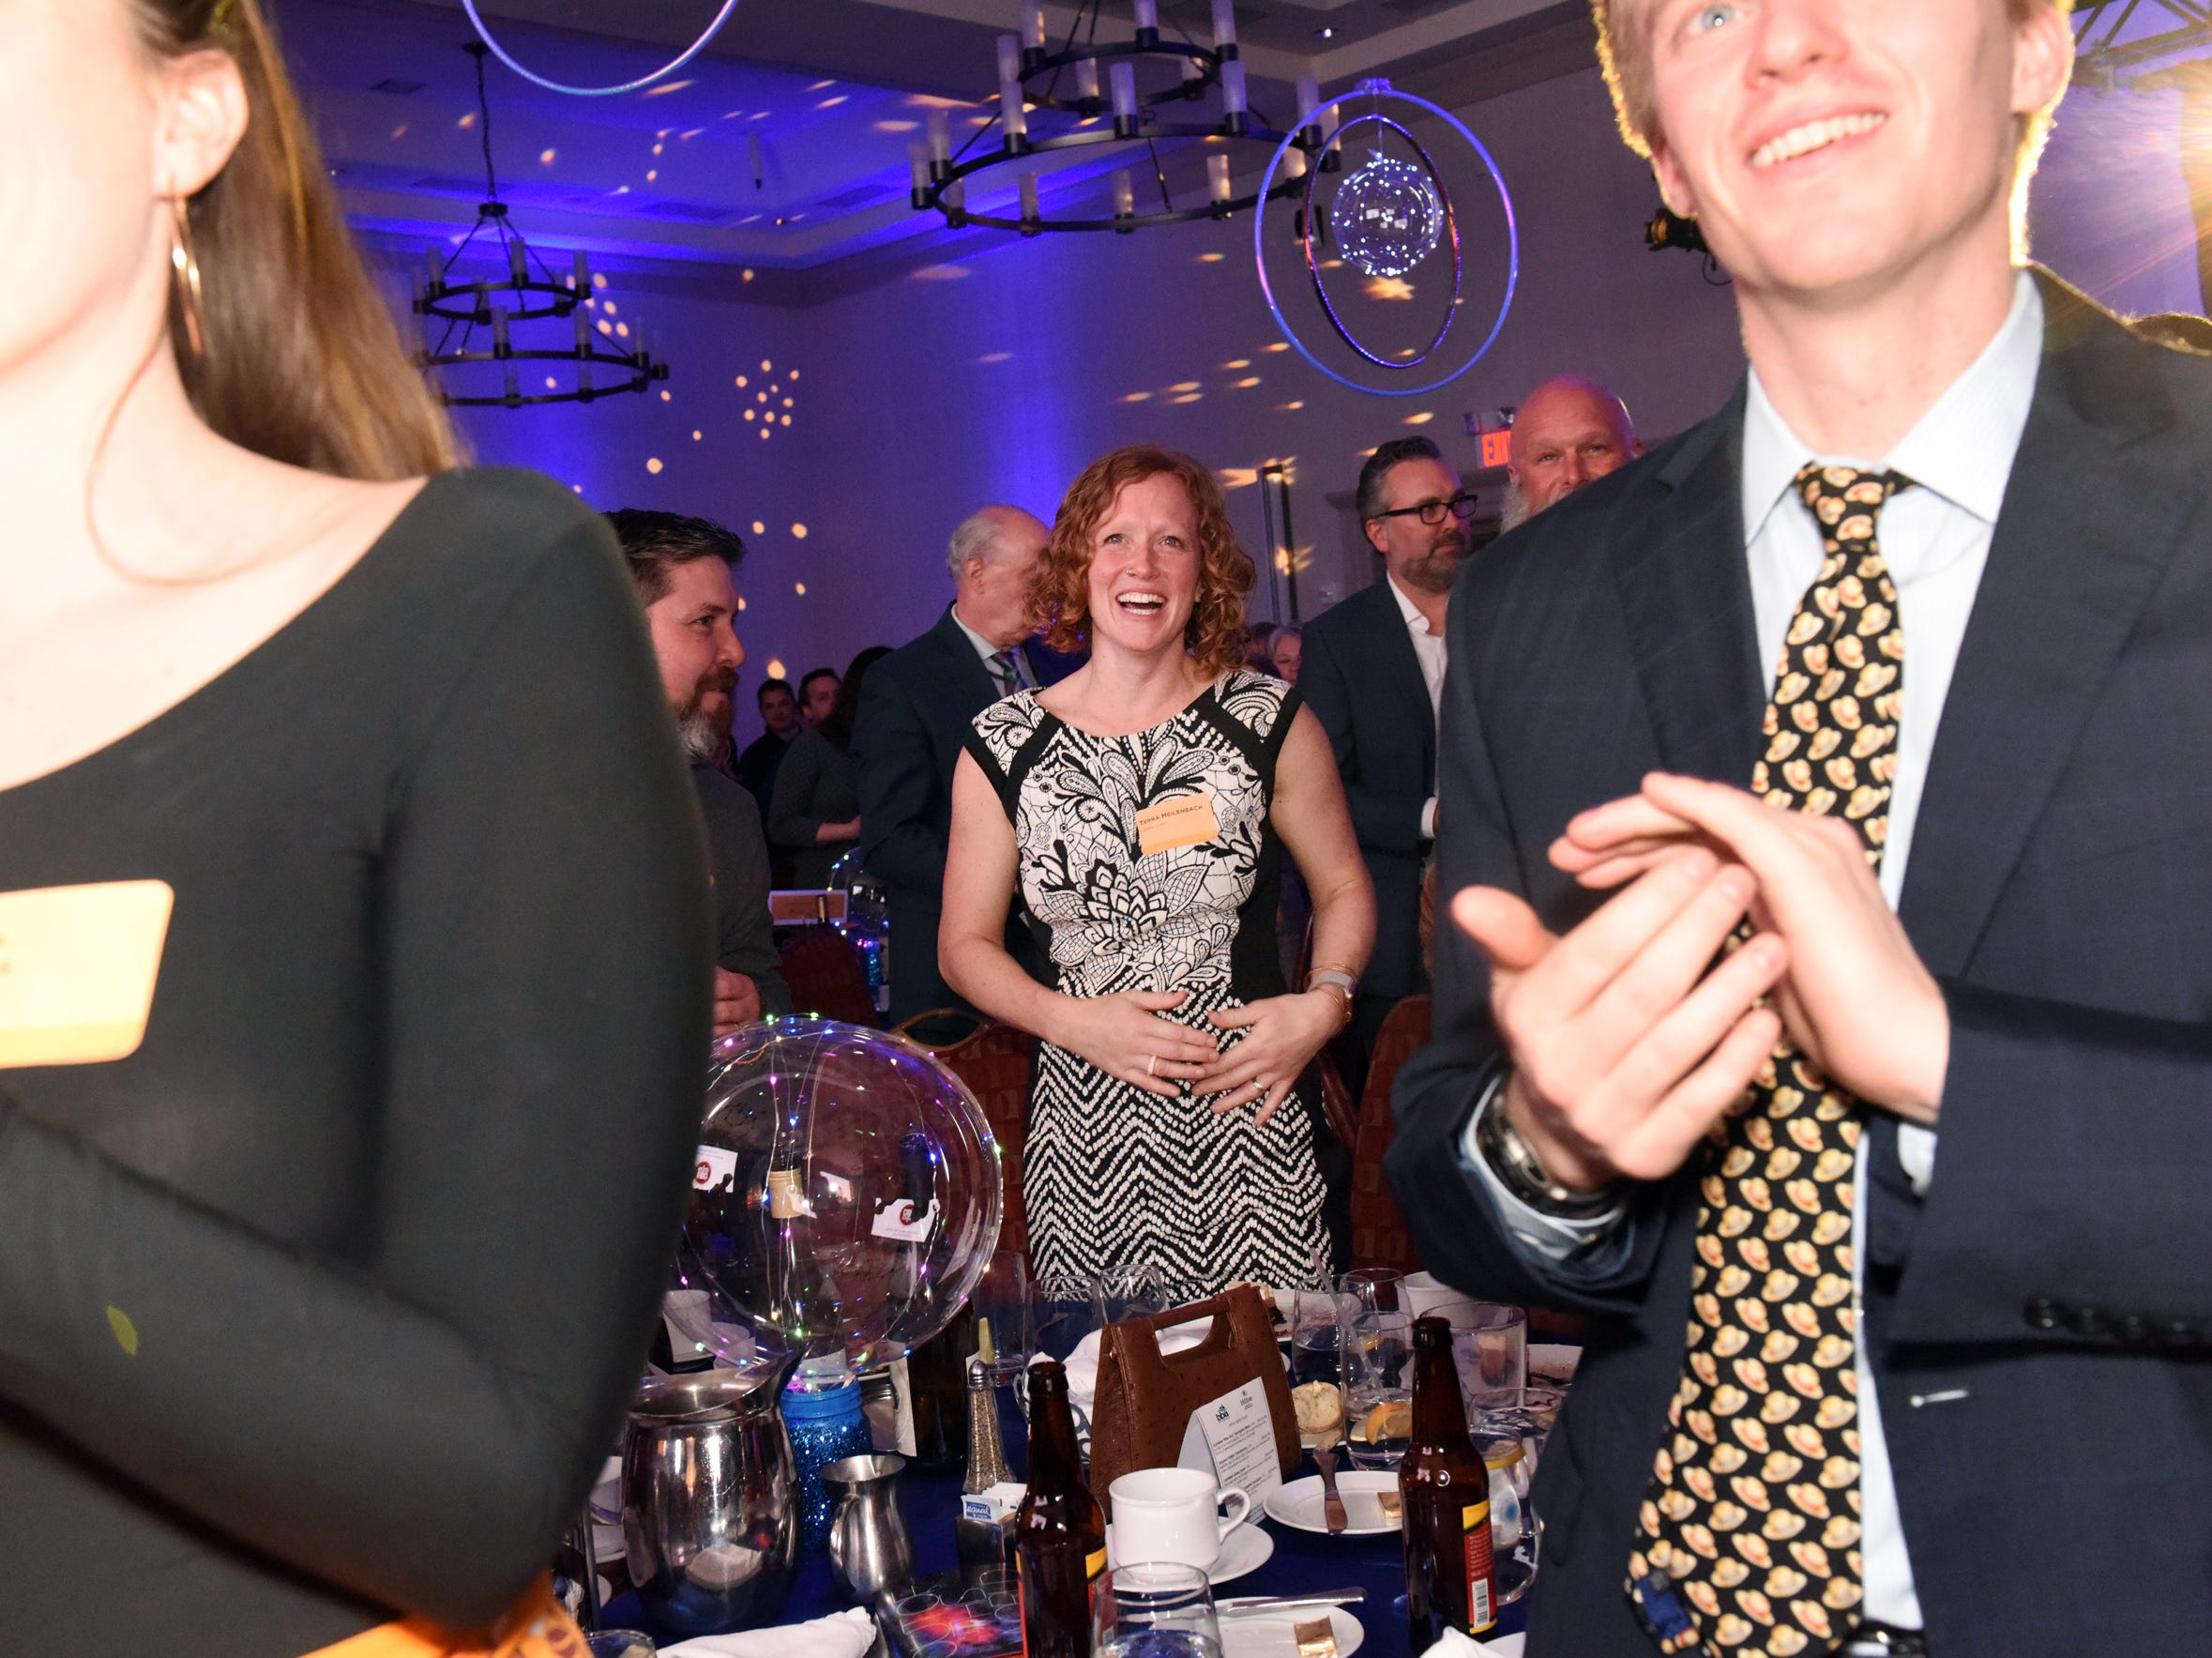 Terra Heilenbach applauds as her husband Justin Heilenbach, co-founder of Citizen Cider, accepts the 2019 Burlington Business Award, presented by Kelly Devine, executive director of the BBA, at the 41st BBA Burlington Business Association Dinner & Annual Meeting at the Hilton Burlington Lake Champlain in Burlington, VT on Thursday, April 4, 2019.